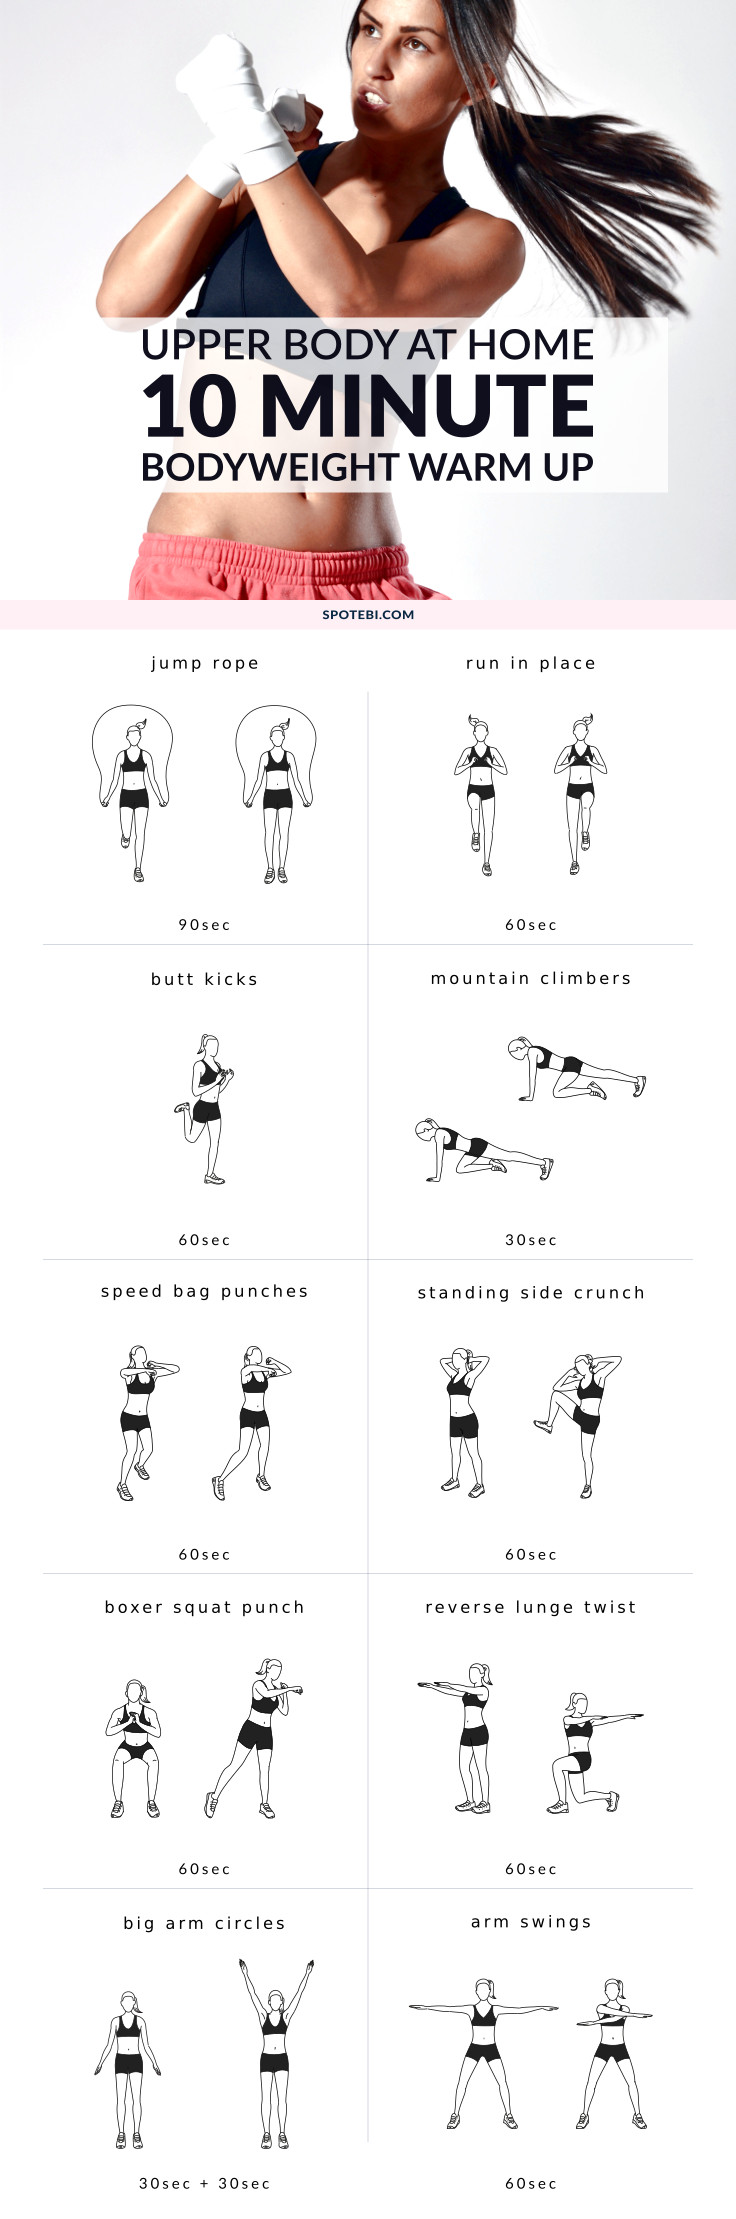 Try this quick warm up routine next time you want to prepare for an upper body workout. A 10 minute set of dynamic exercises to help you improve your flexibility, boost your metabolism and prevent injury. https://www.spotebi.com/workout-routines/upper-body-dynamic-warm-up-exercises/